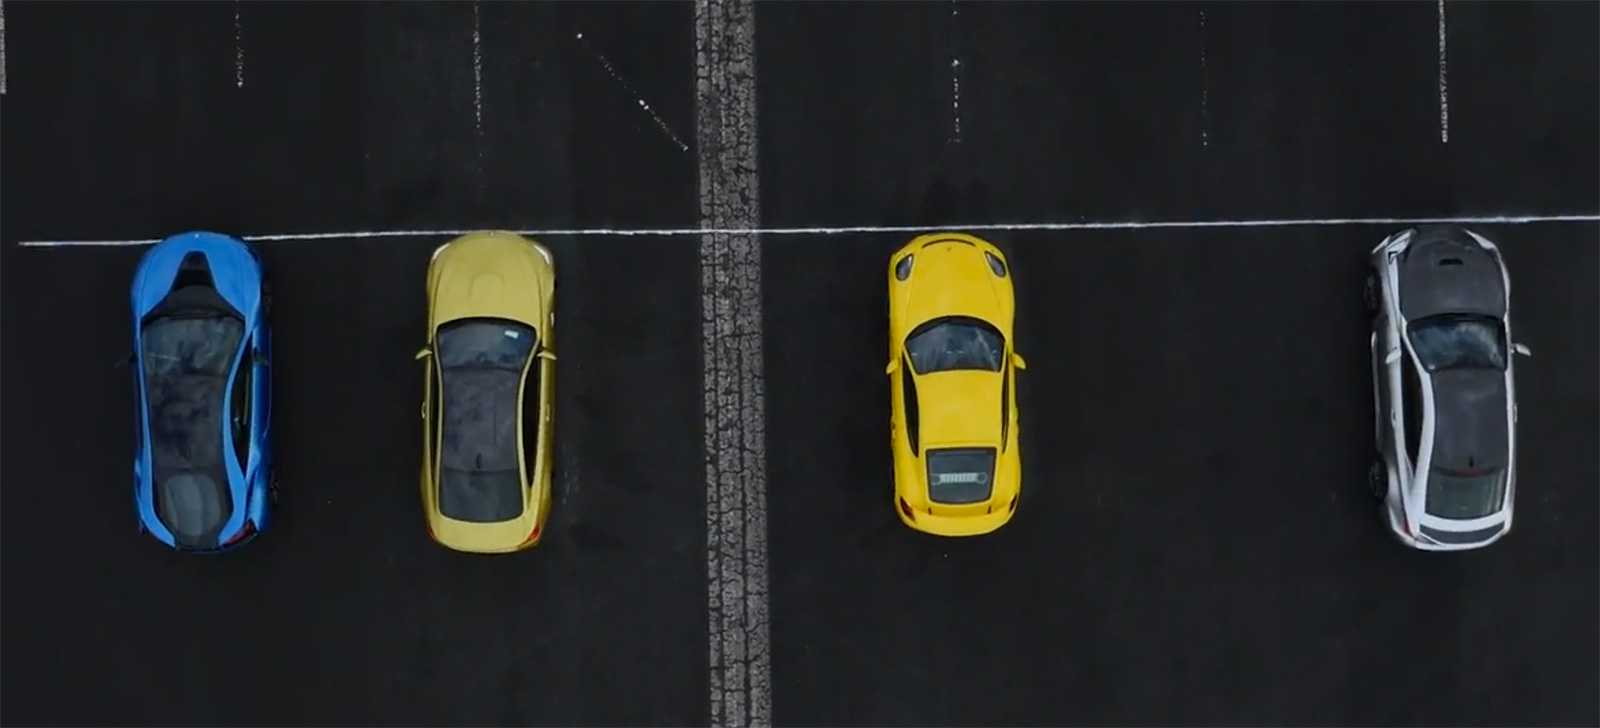 Spectacular Drag Racing Event Pits BMW M4, BMW i8, Lexus RC F and Porsche GT4